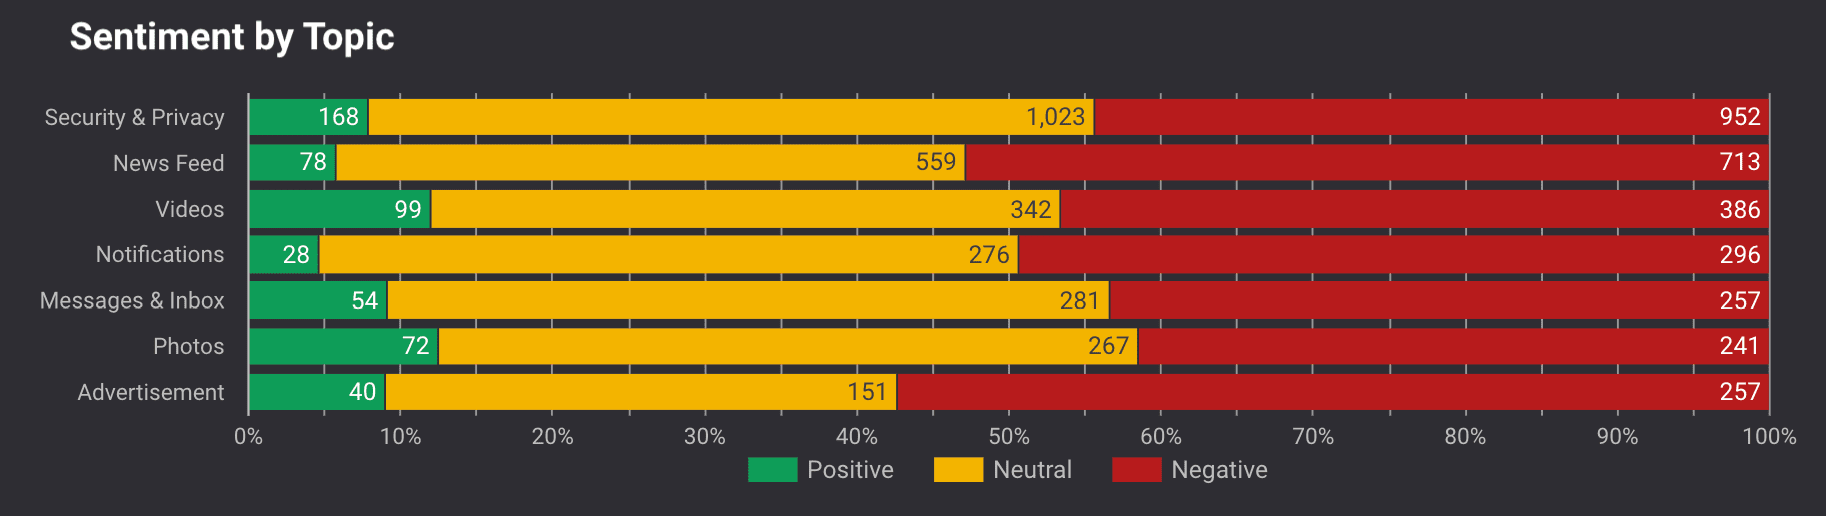 Sentiment by Topic graph.